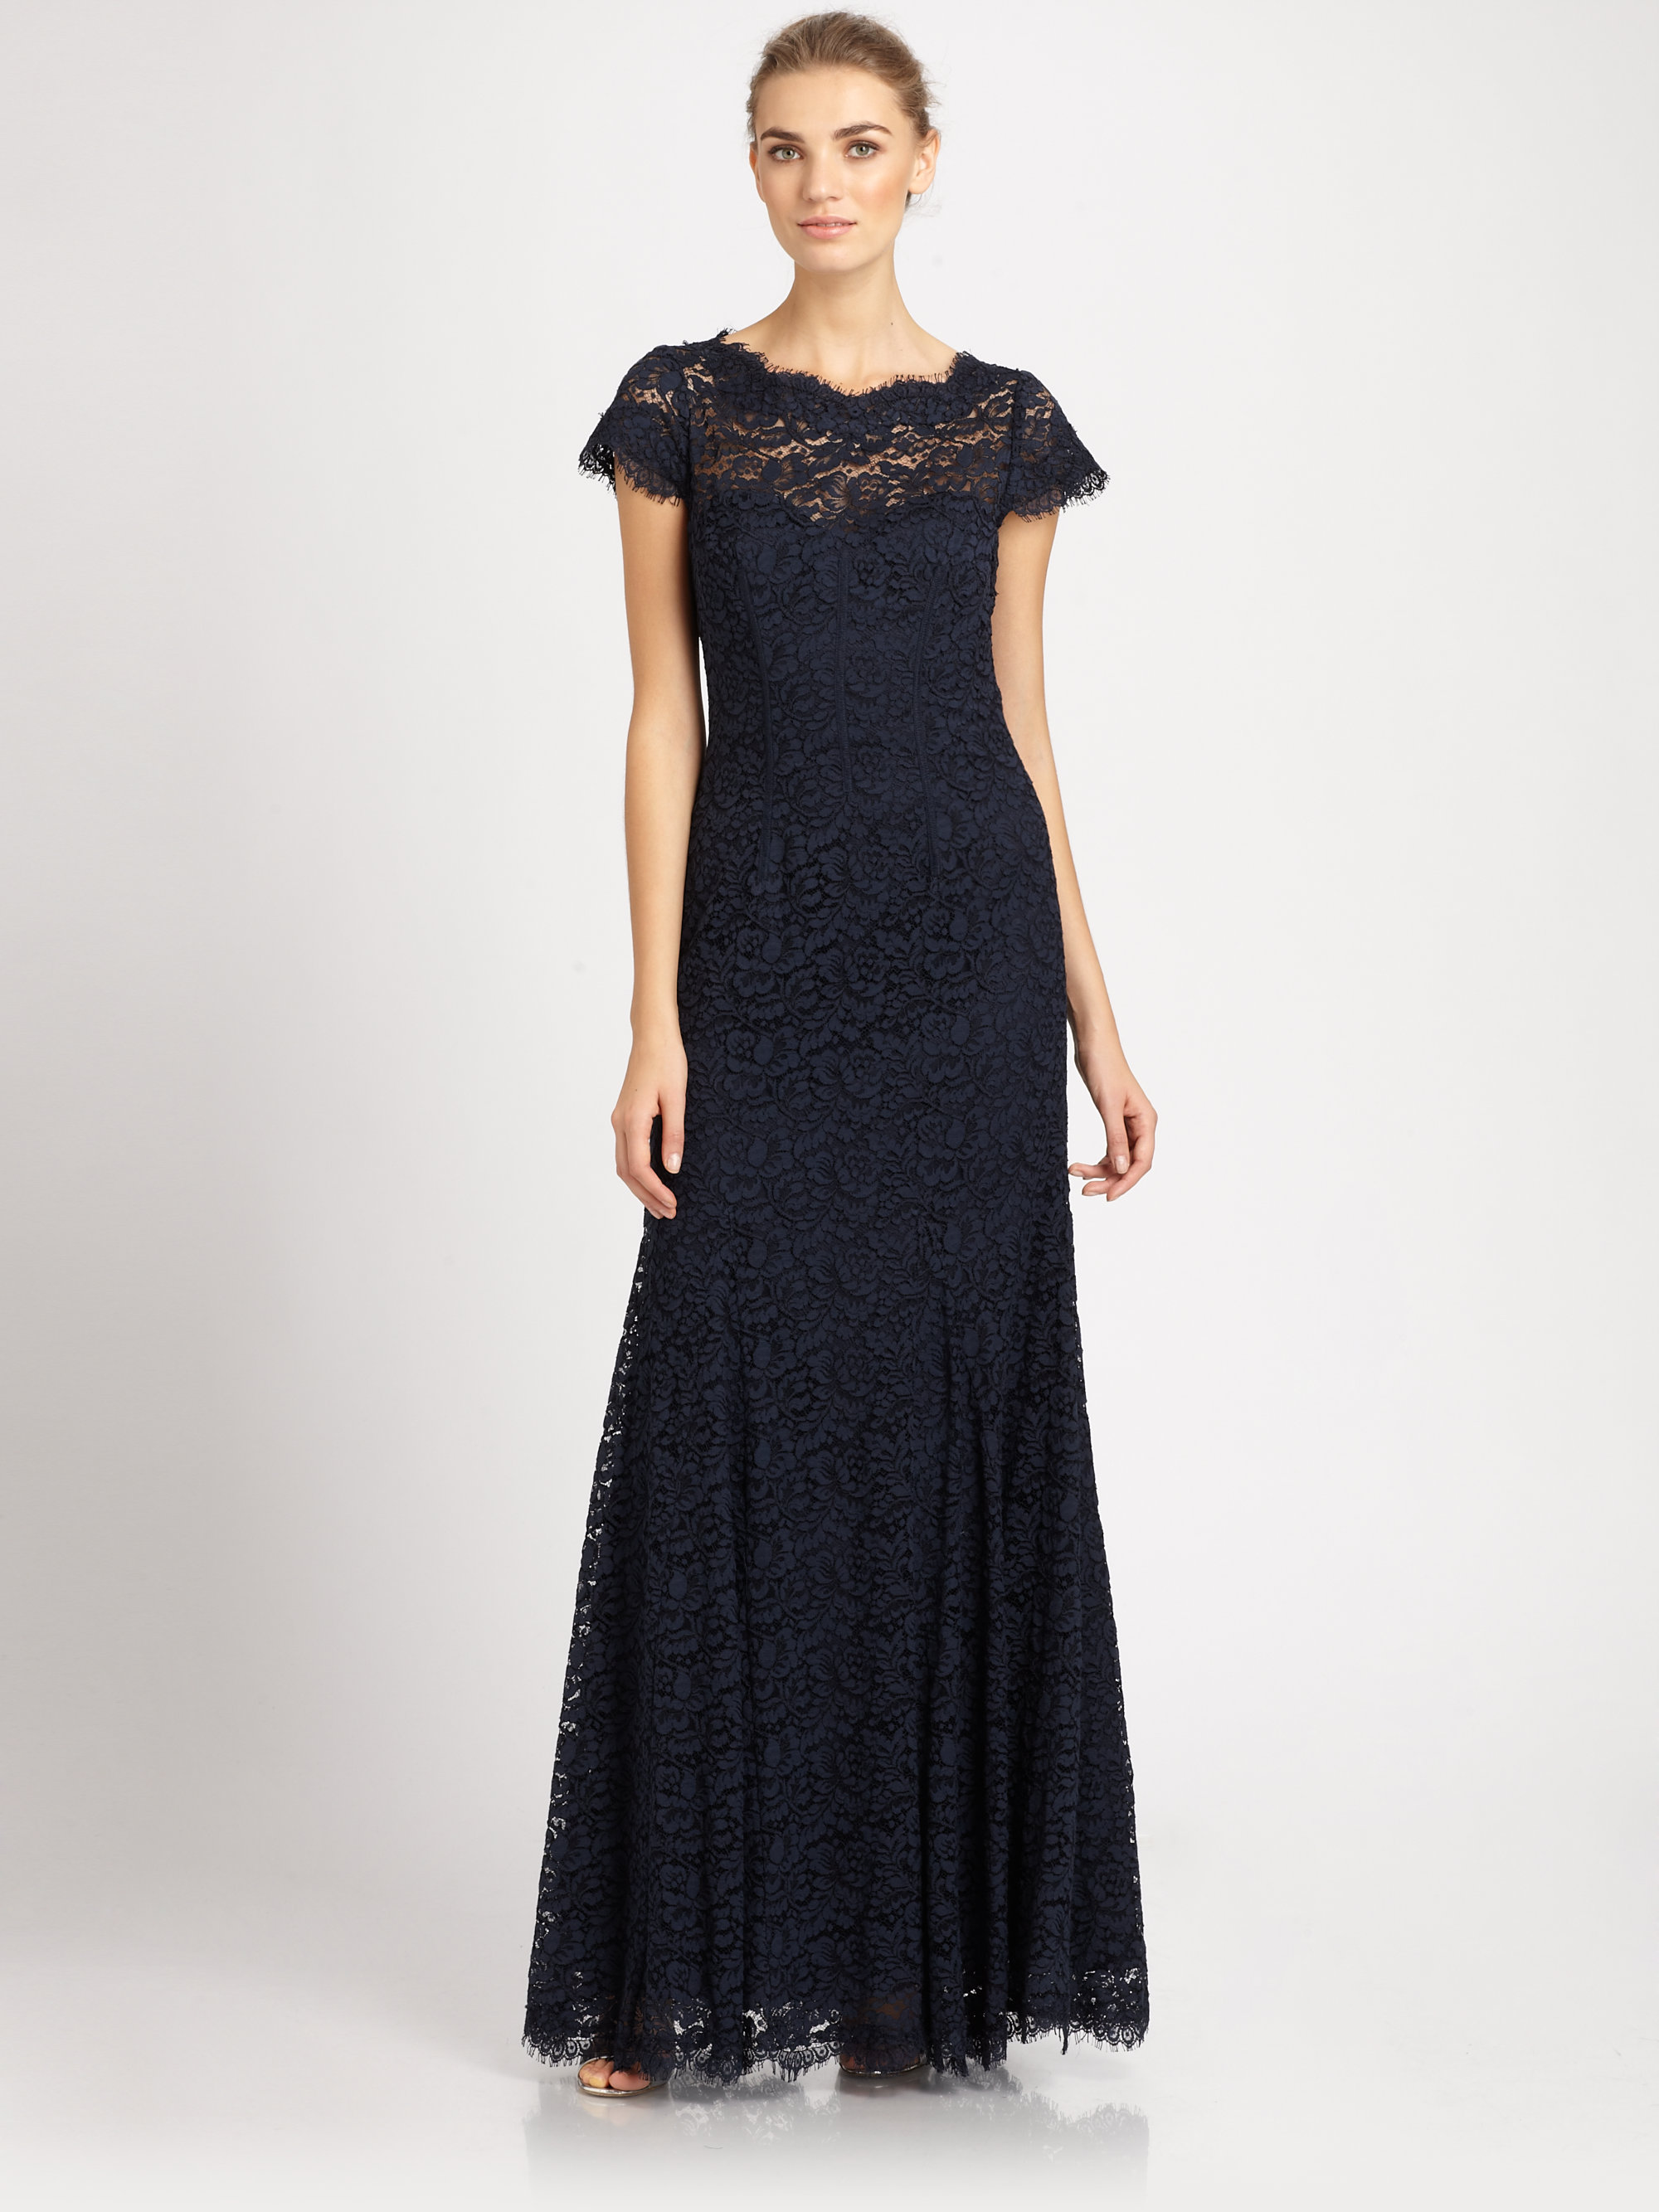 Lyst - Ml monique lhuillier Openback Lace Gown in Blue